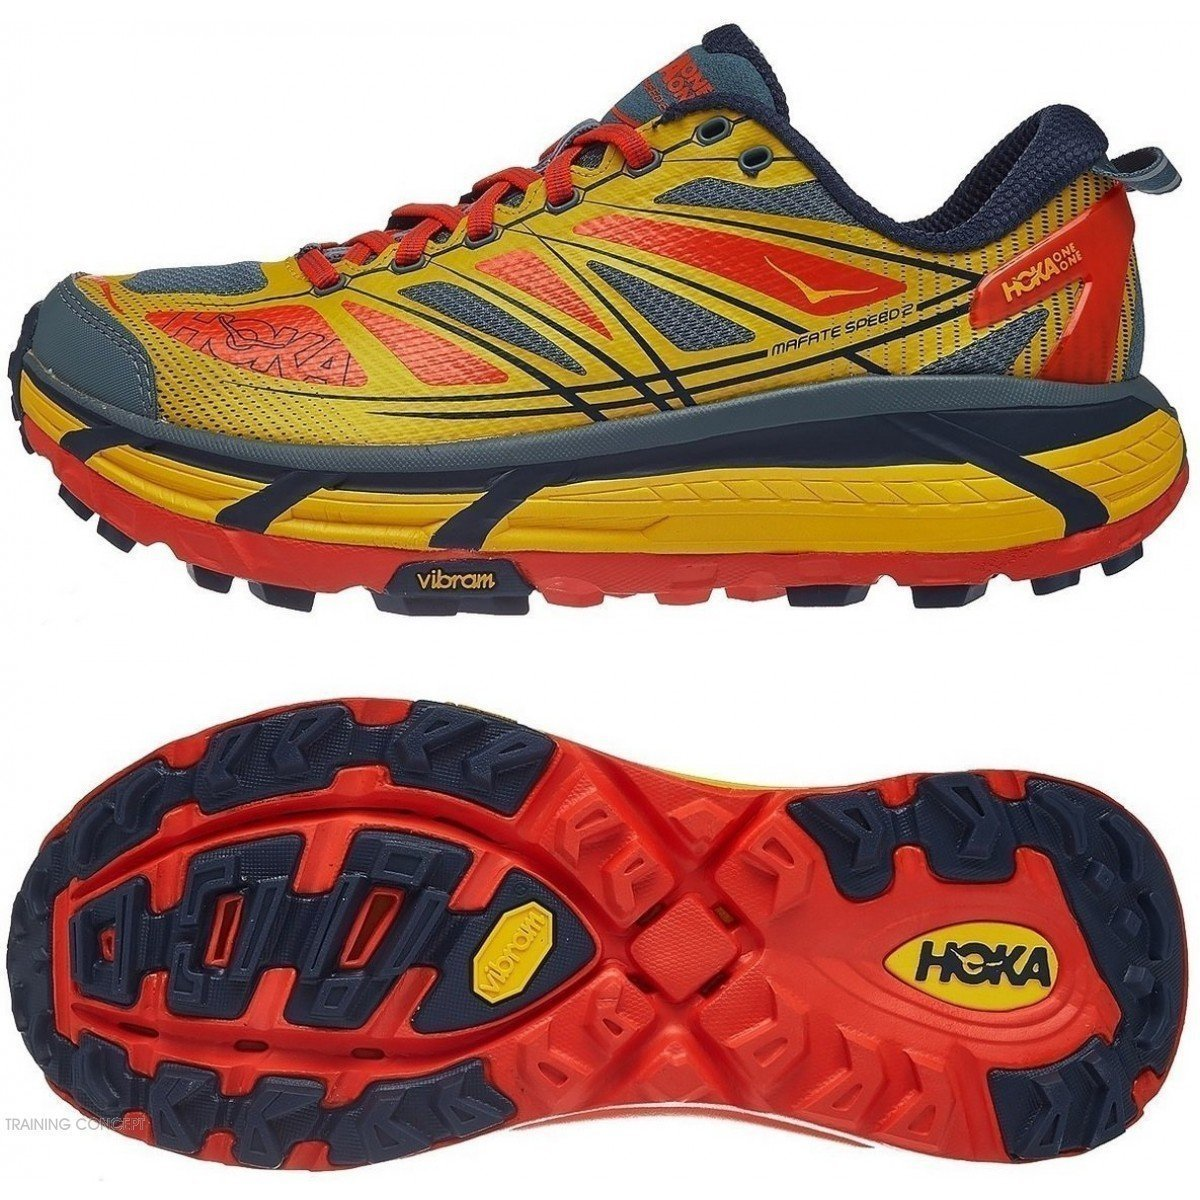 new styles good selling fast delivery chaussure de trail running hoka mafate speed 2 1012343ogmo